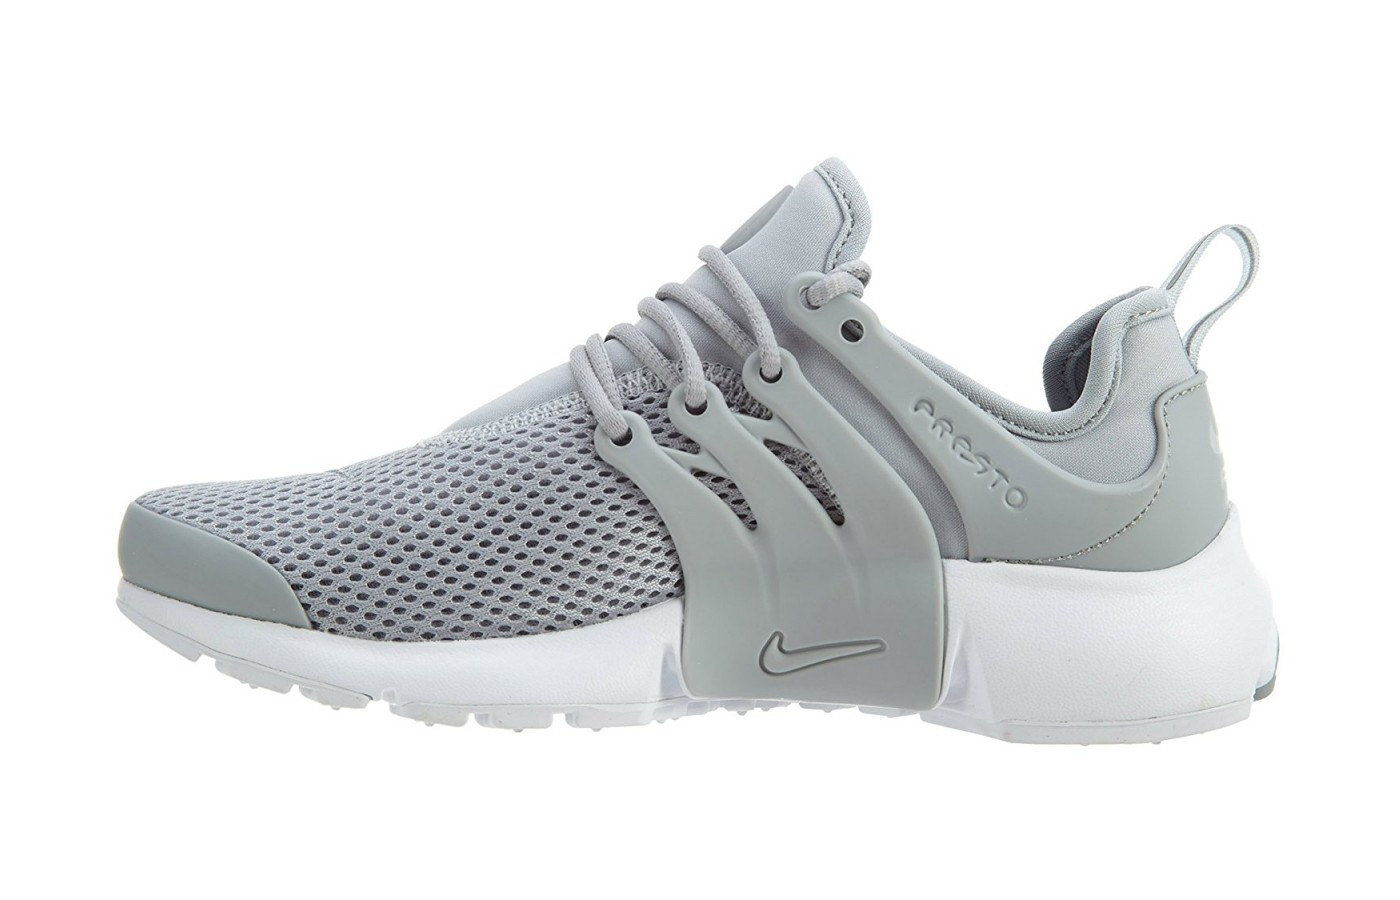 buy popular 2ece5 7d4c3 ... nike air presto opposite side ...